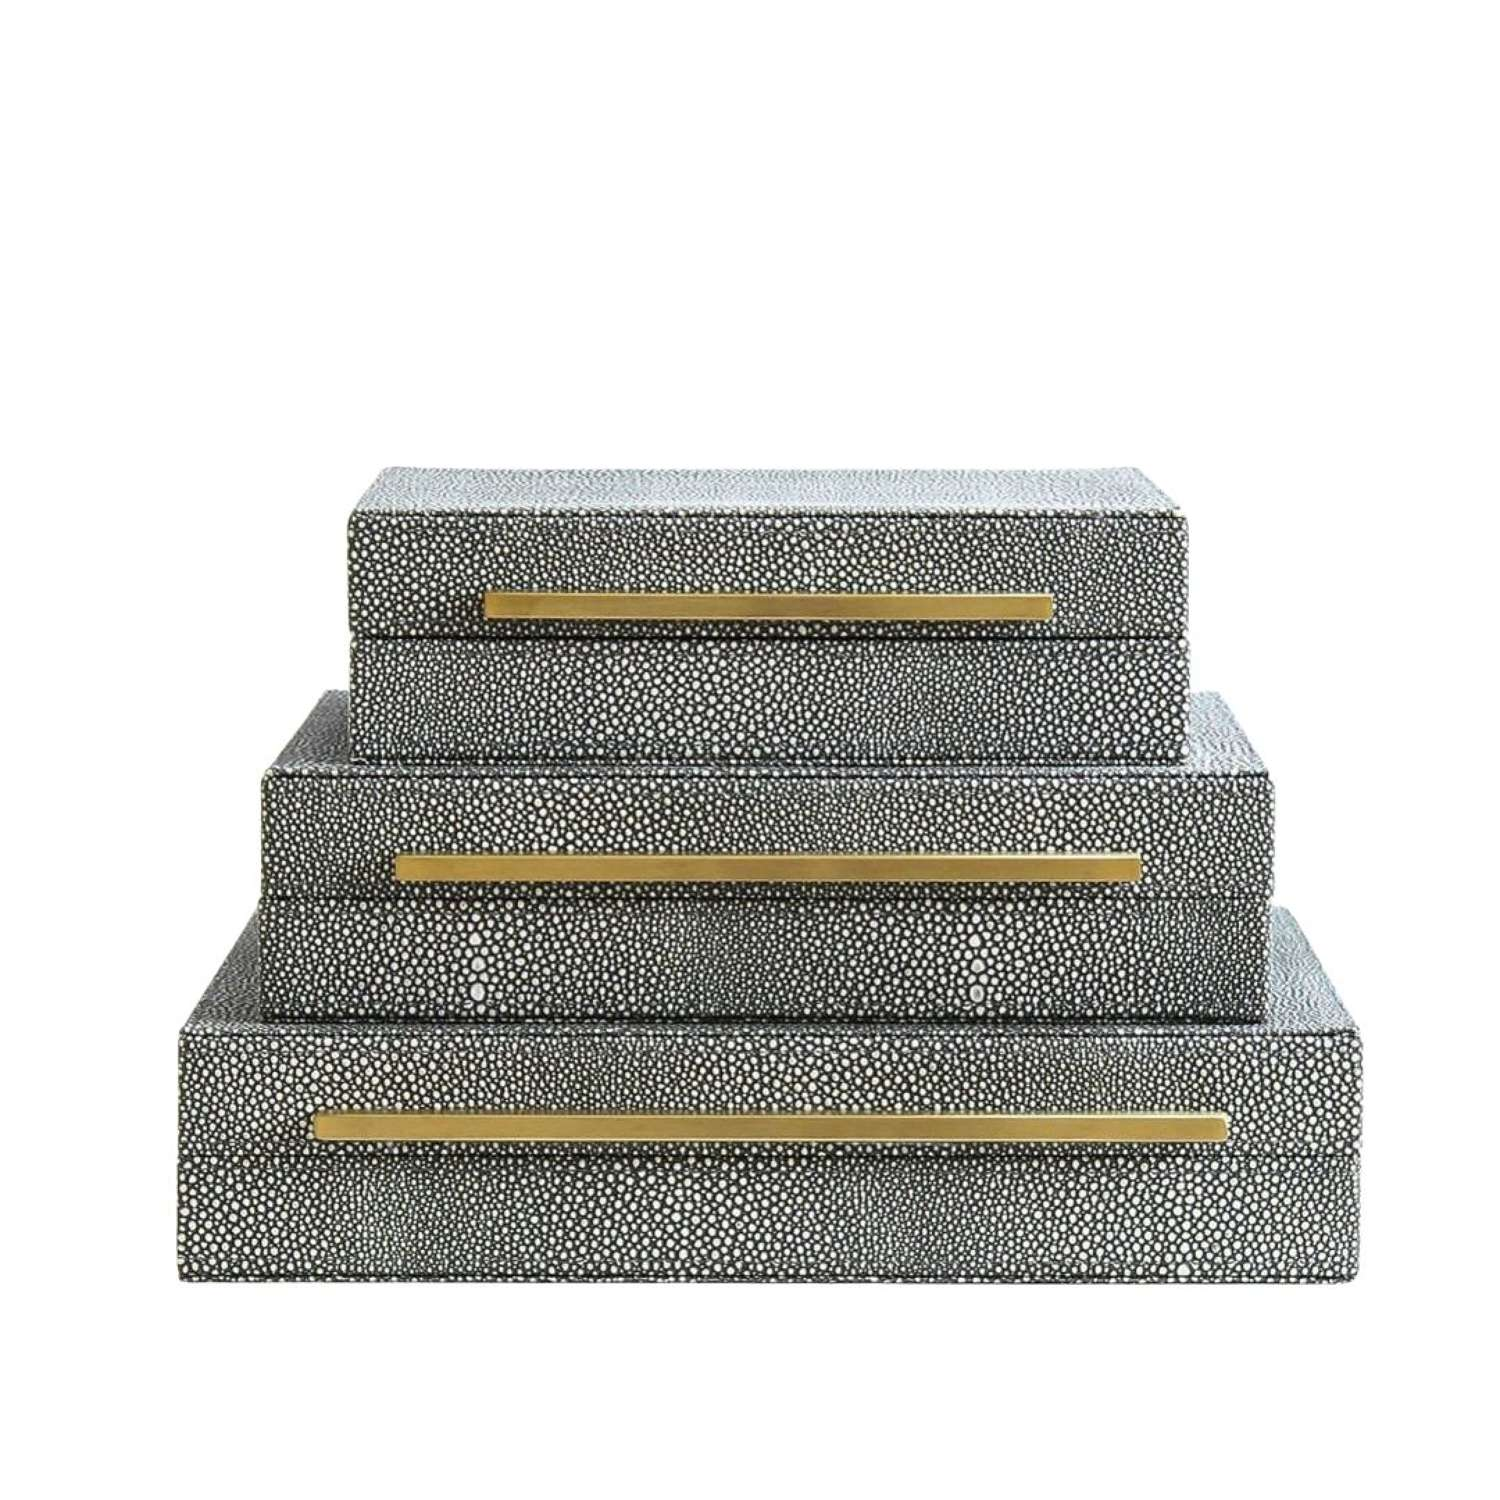 Trio of Faux Shagreen Leather Storage Boxes